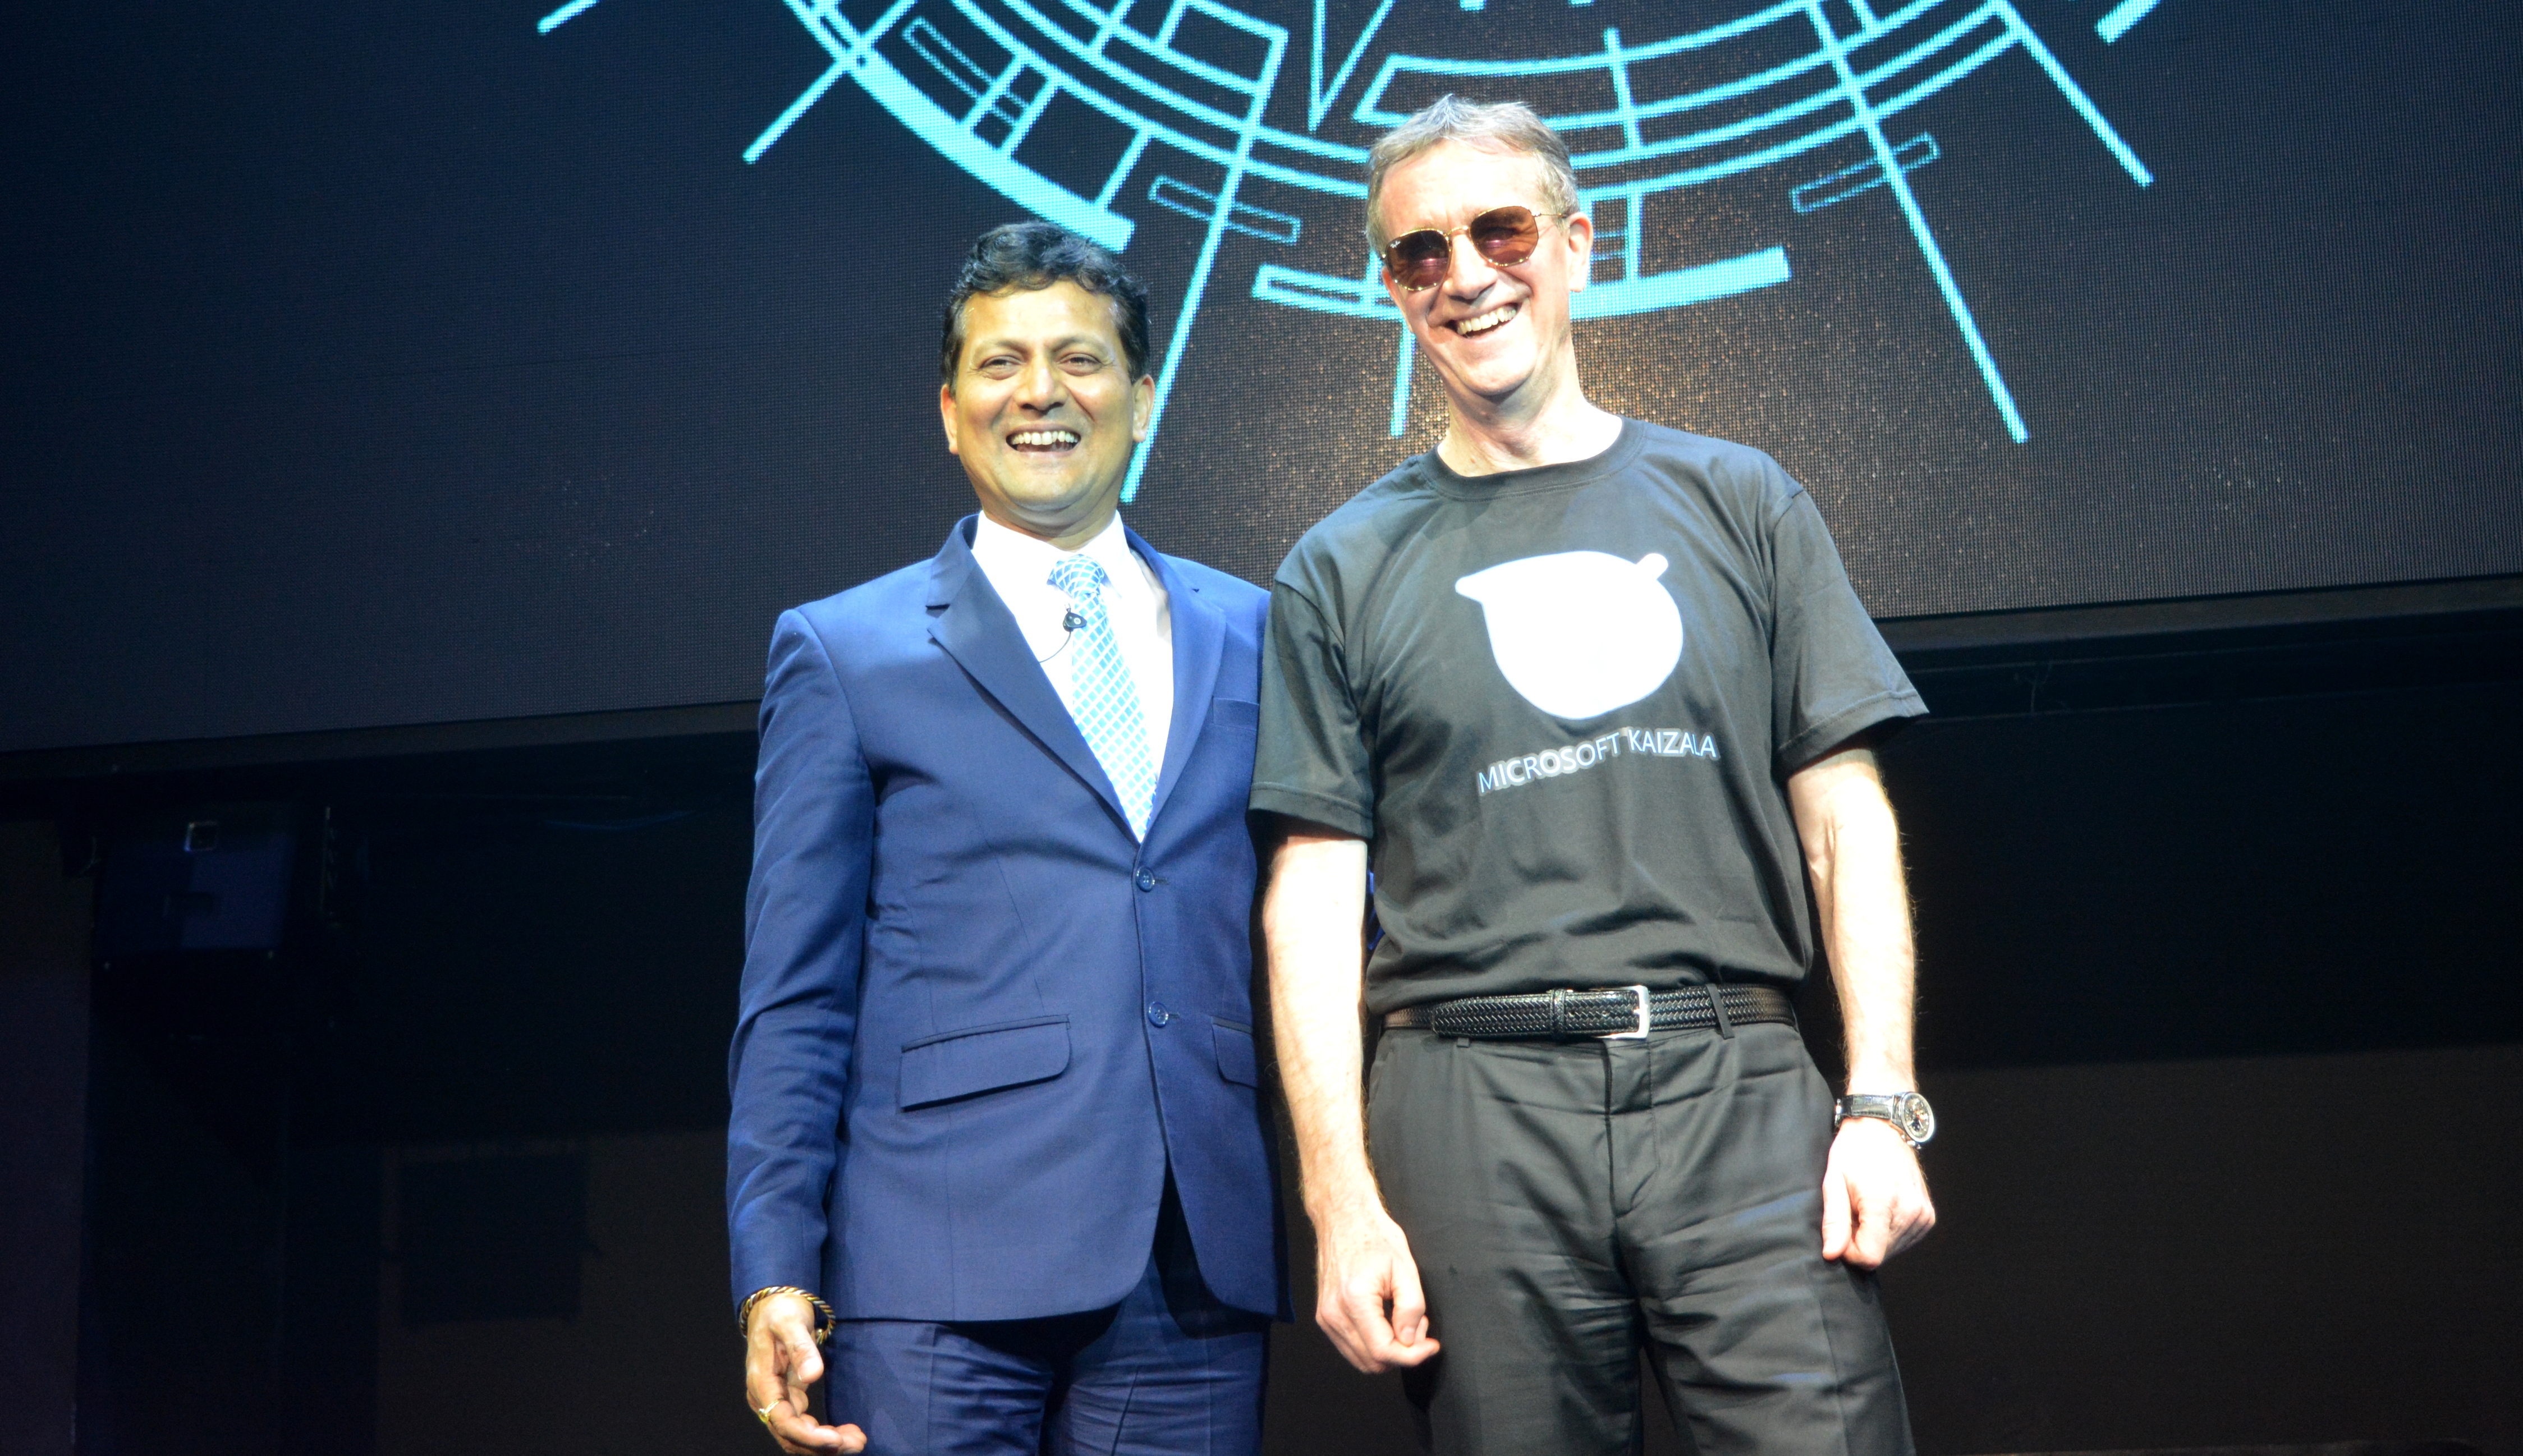 Rajiv Kumar, Corporate Vice President of the Microsoft Ofiice India and Bertrand Launay, Managing Director of Microsoft Philippines.